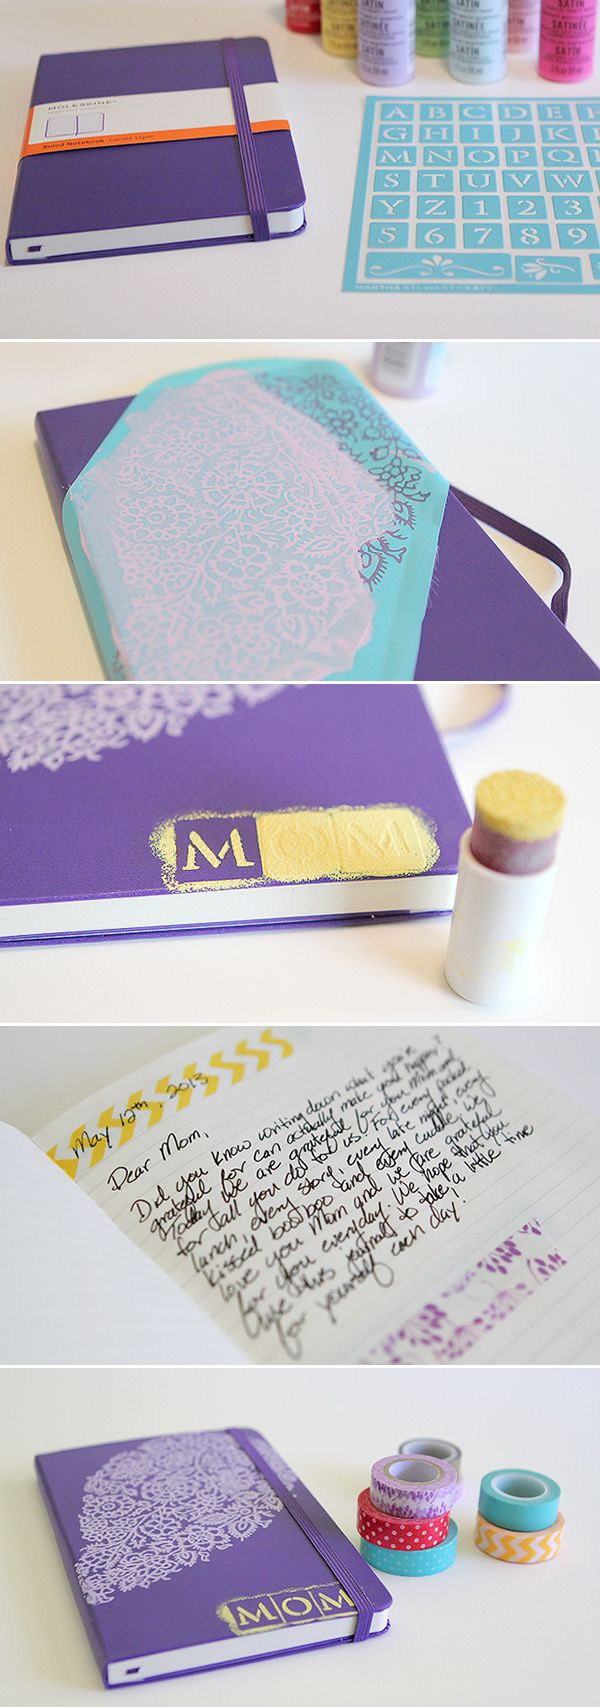 Make A Gratitude Journal With Fine Crafty Touch And Decoration For Mothers